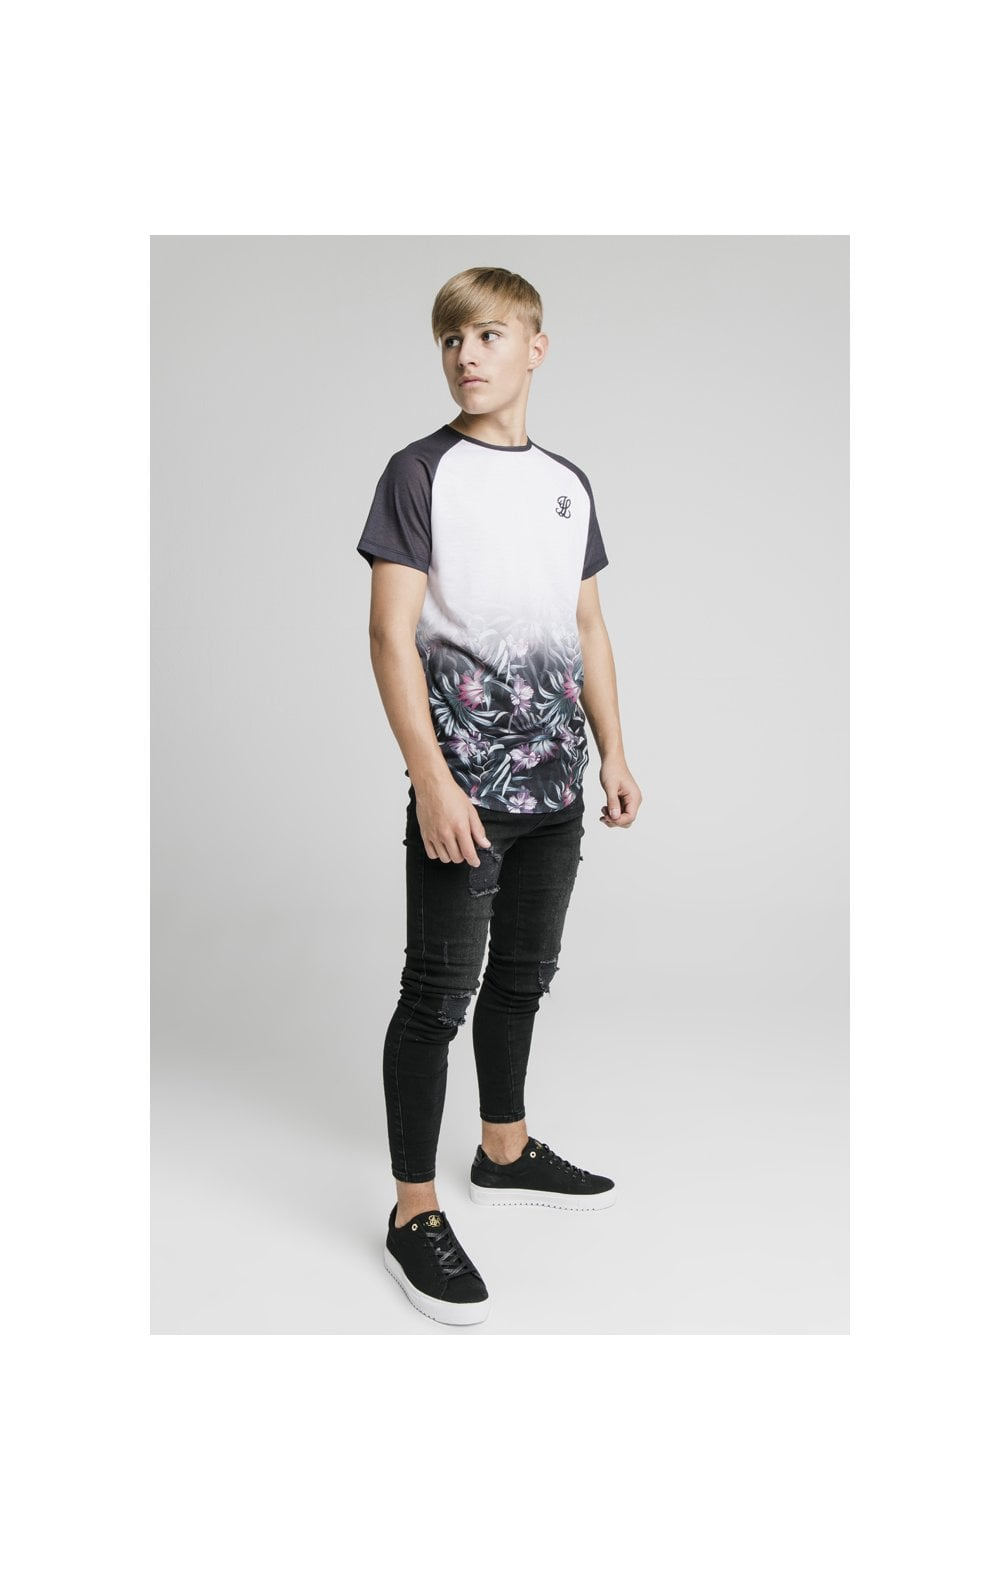 Illusive London Tropical Fade Tee - Navy & White (4)